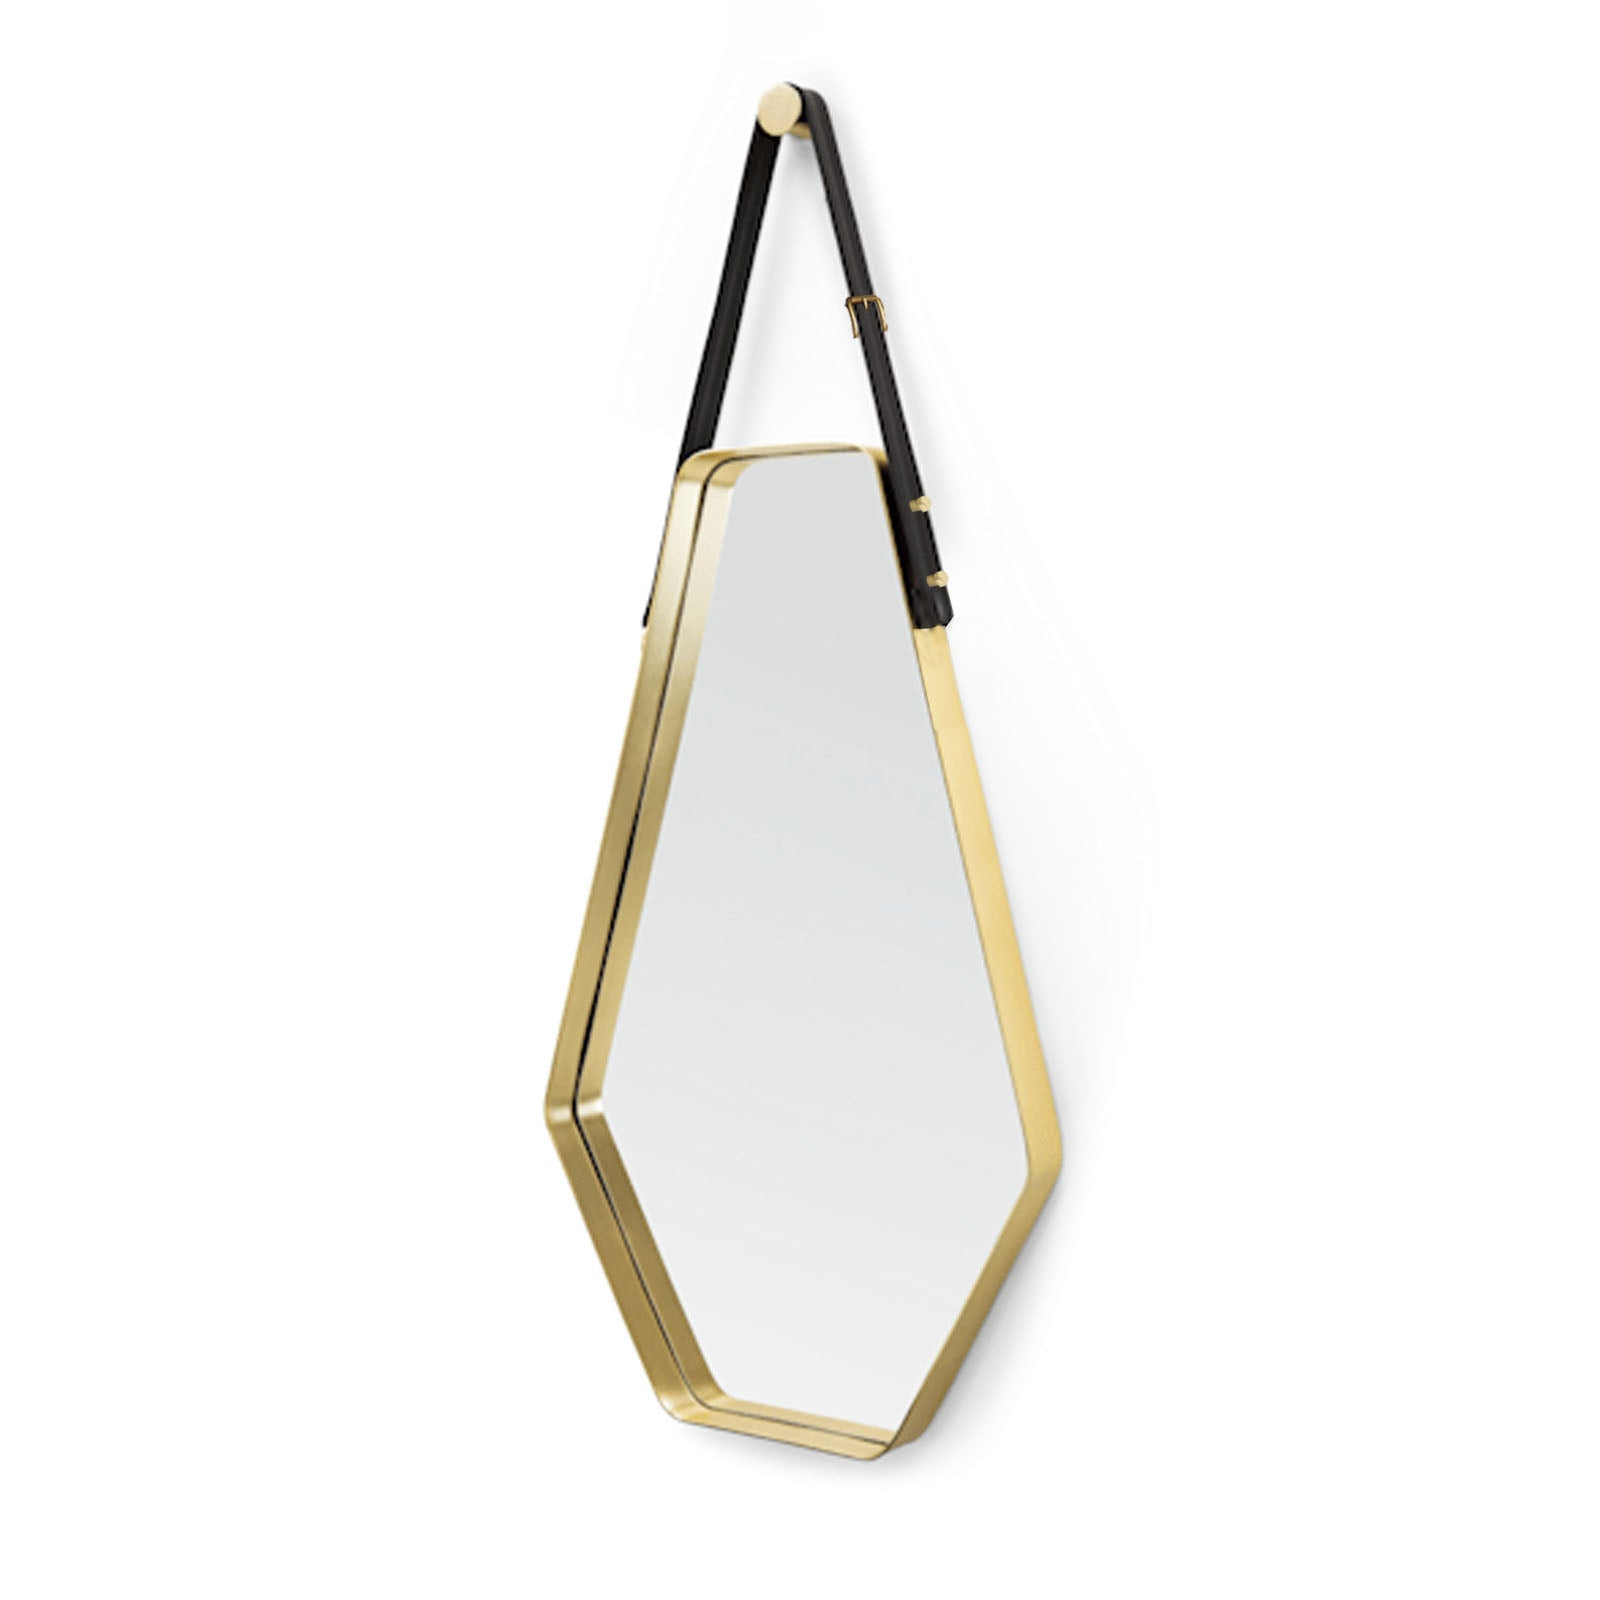 Mid century French Style Mirror  OA-6042 -  مرآة على الطراز الفرنسي ميد سينشري - Shop Online Furniture and Home Decor Store in Dubai, UAE at ebarza